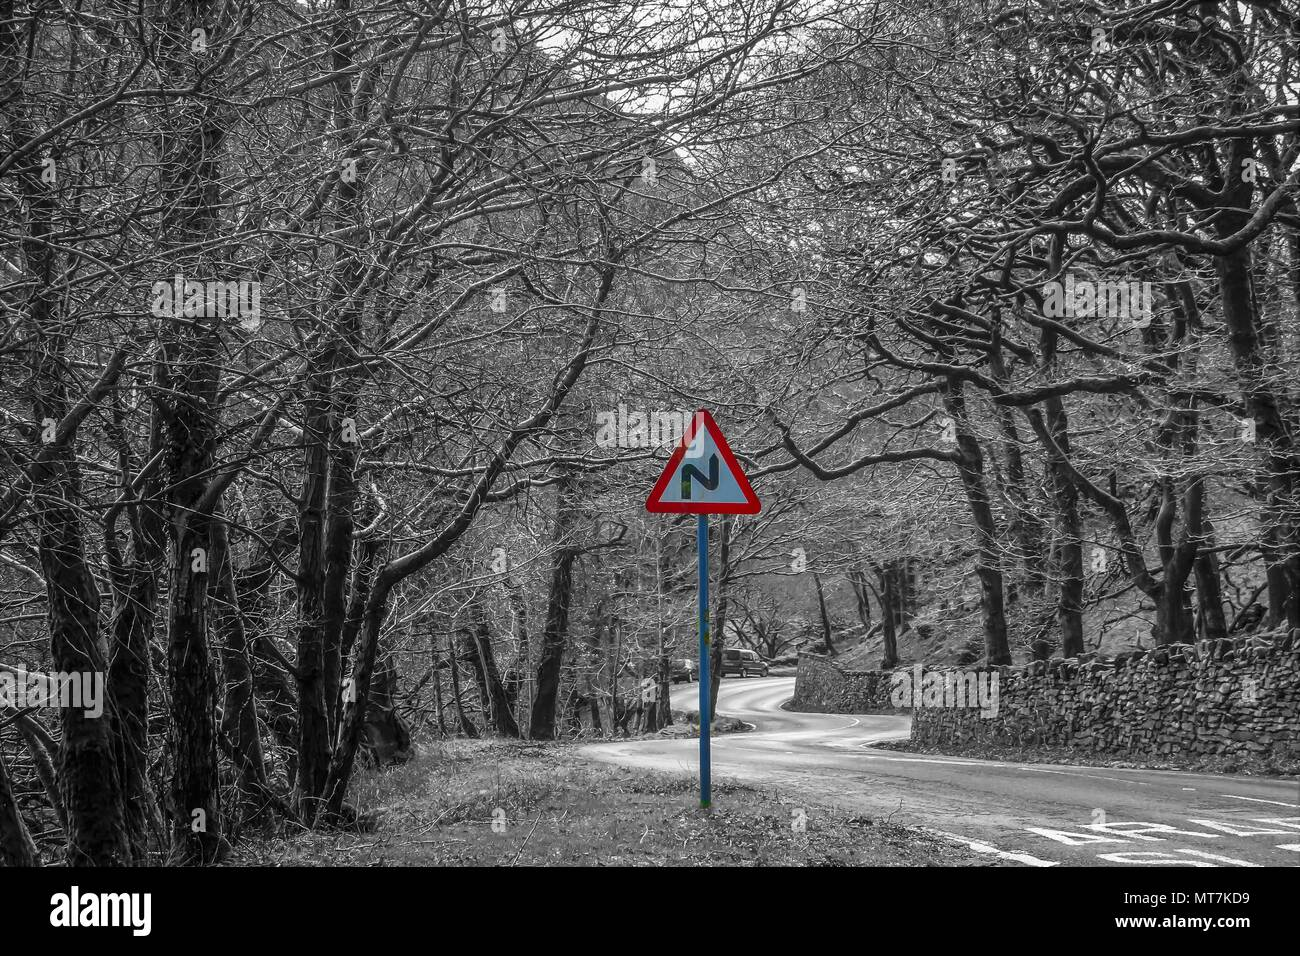 COLOUR SPLASHED SHARP BEND SIGN IN THE COUNTRYSIDE OF NORTH WALES - Stock Image